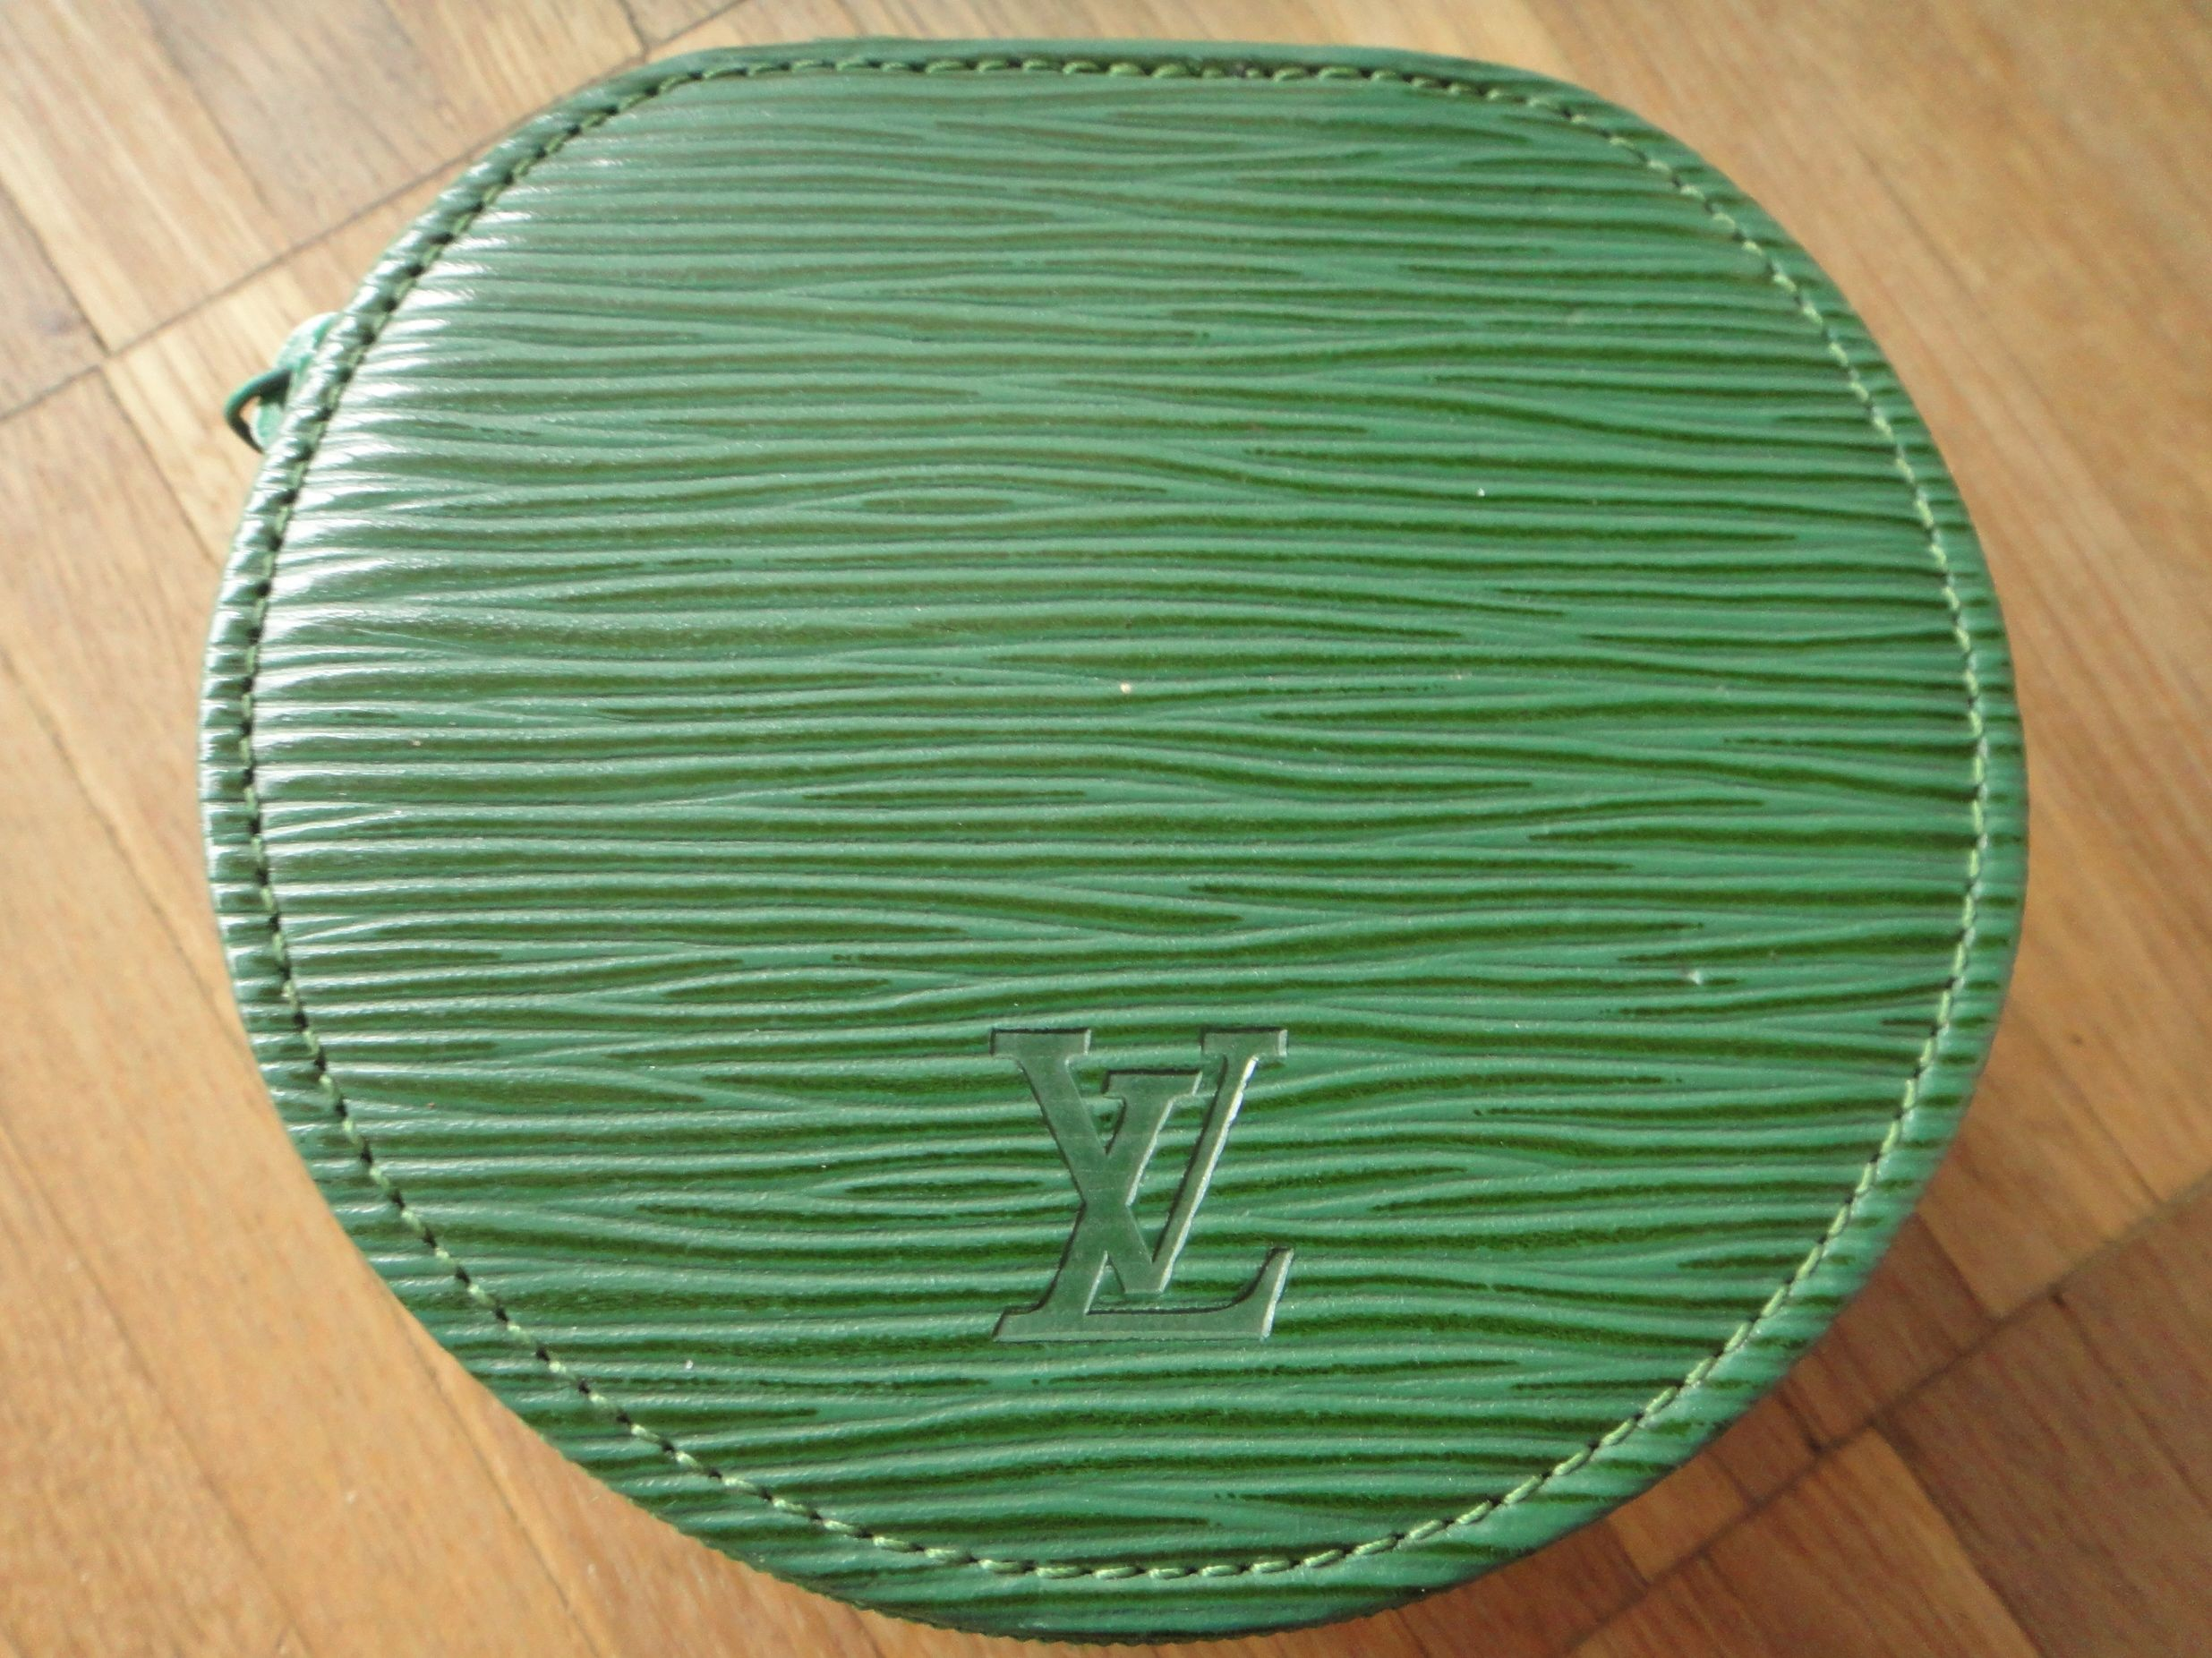 LV Ecrin Bijoux - medium sized Epi jewelry box in borneo green :-)